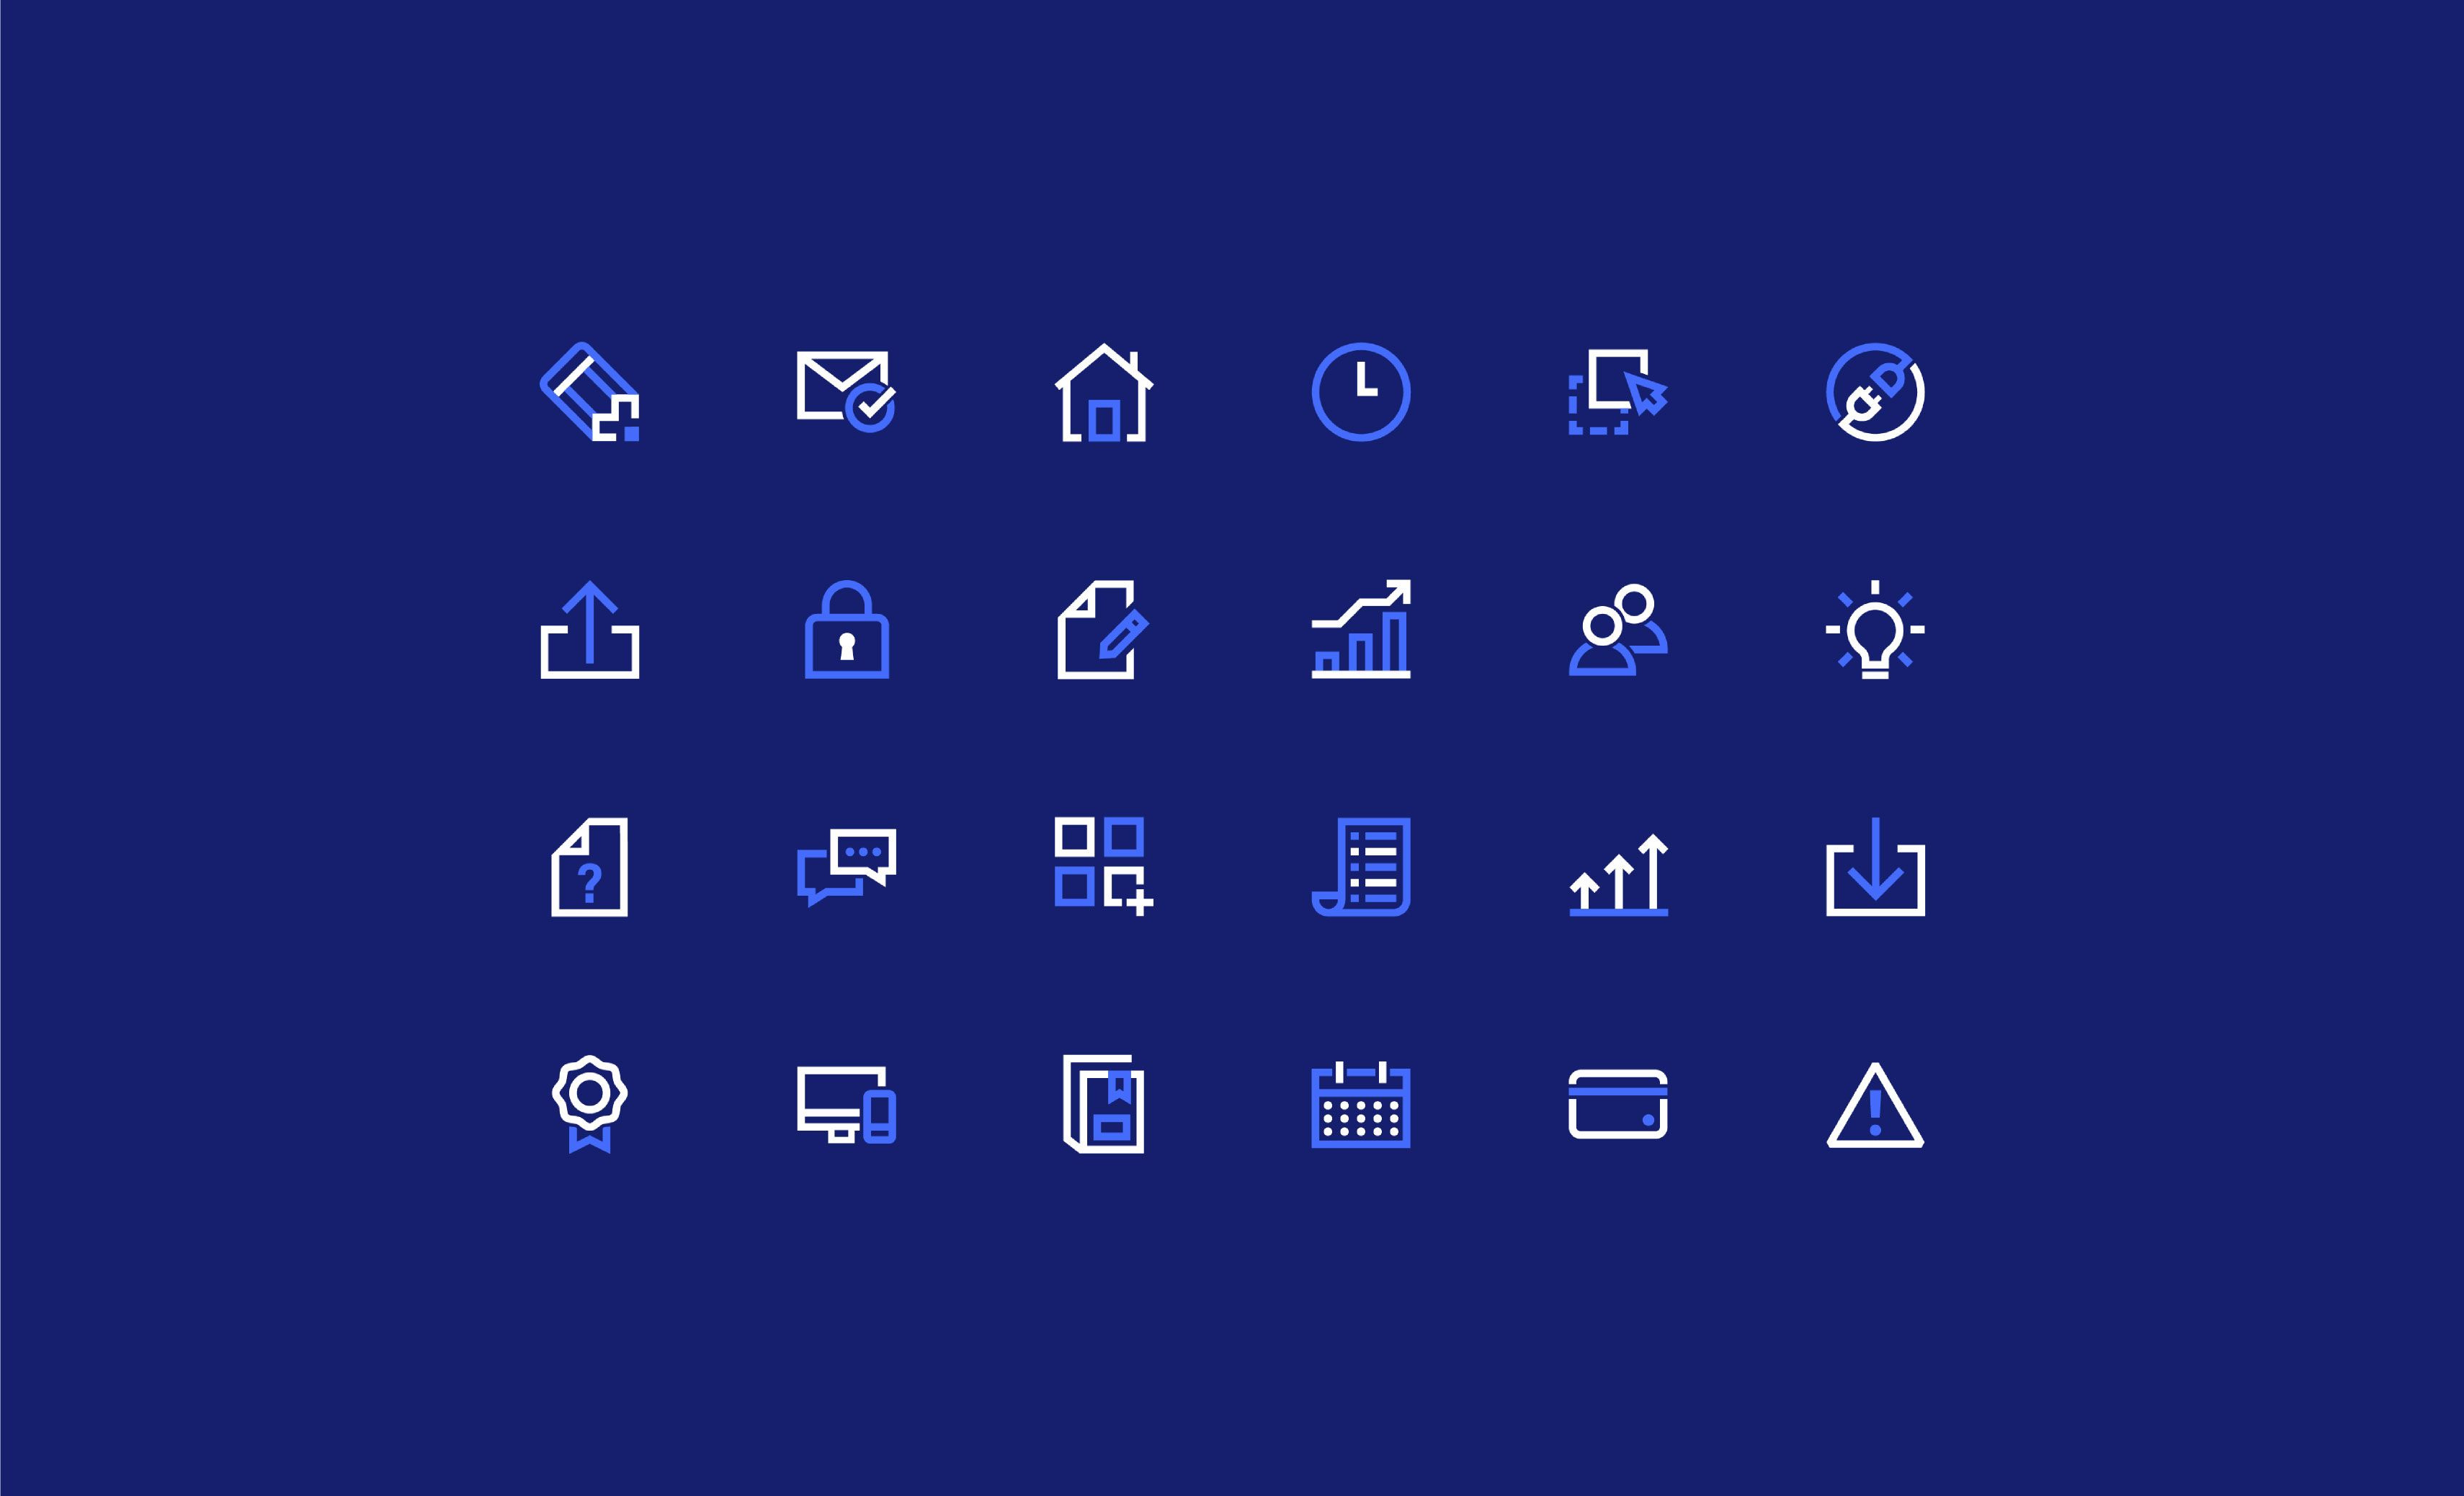 Coassemble App Icons